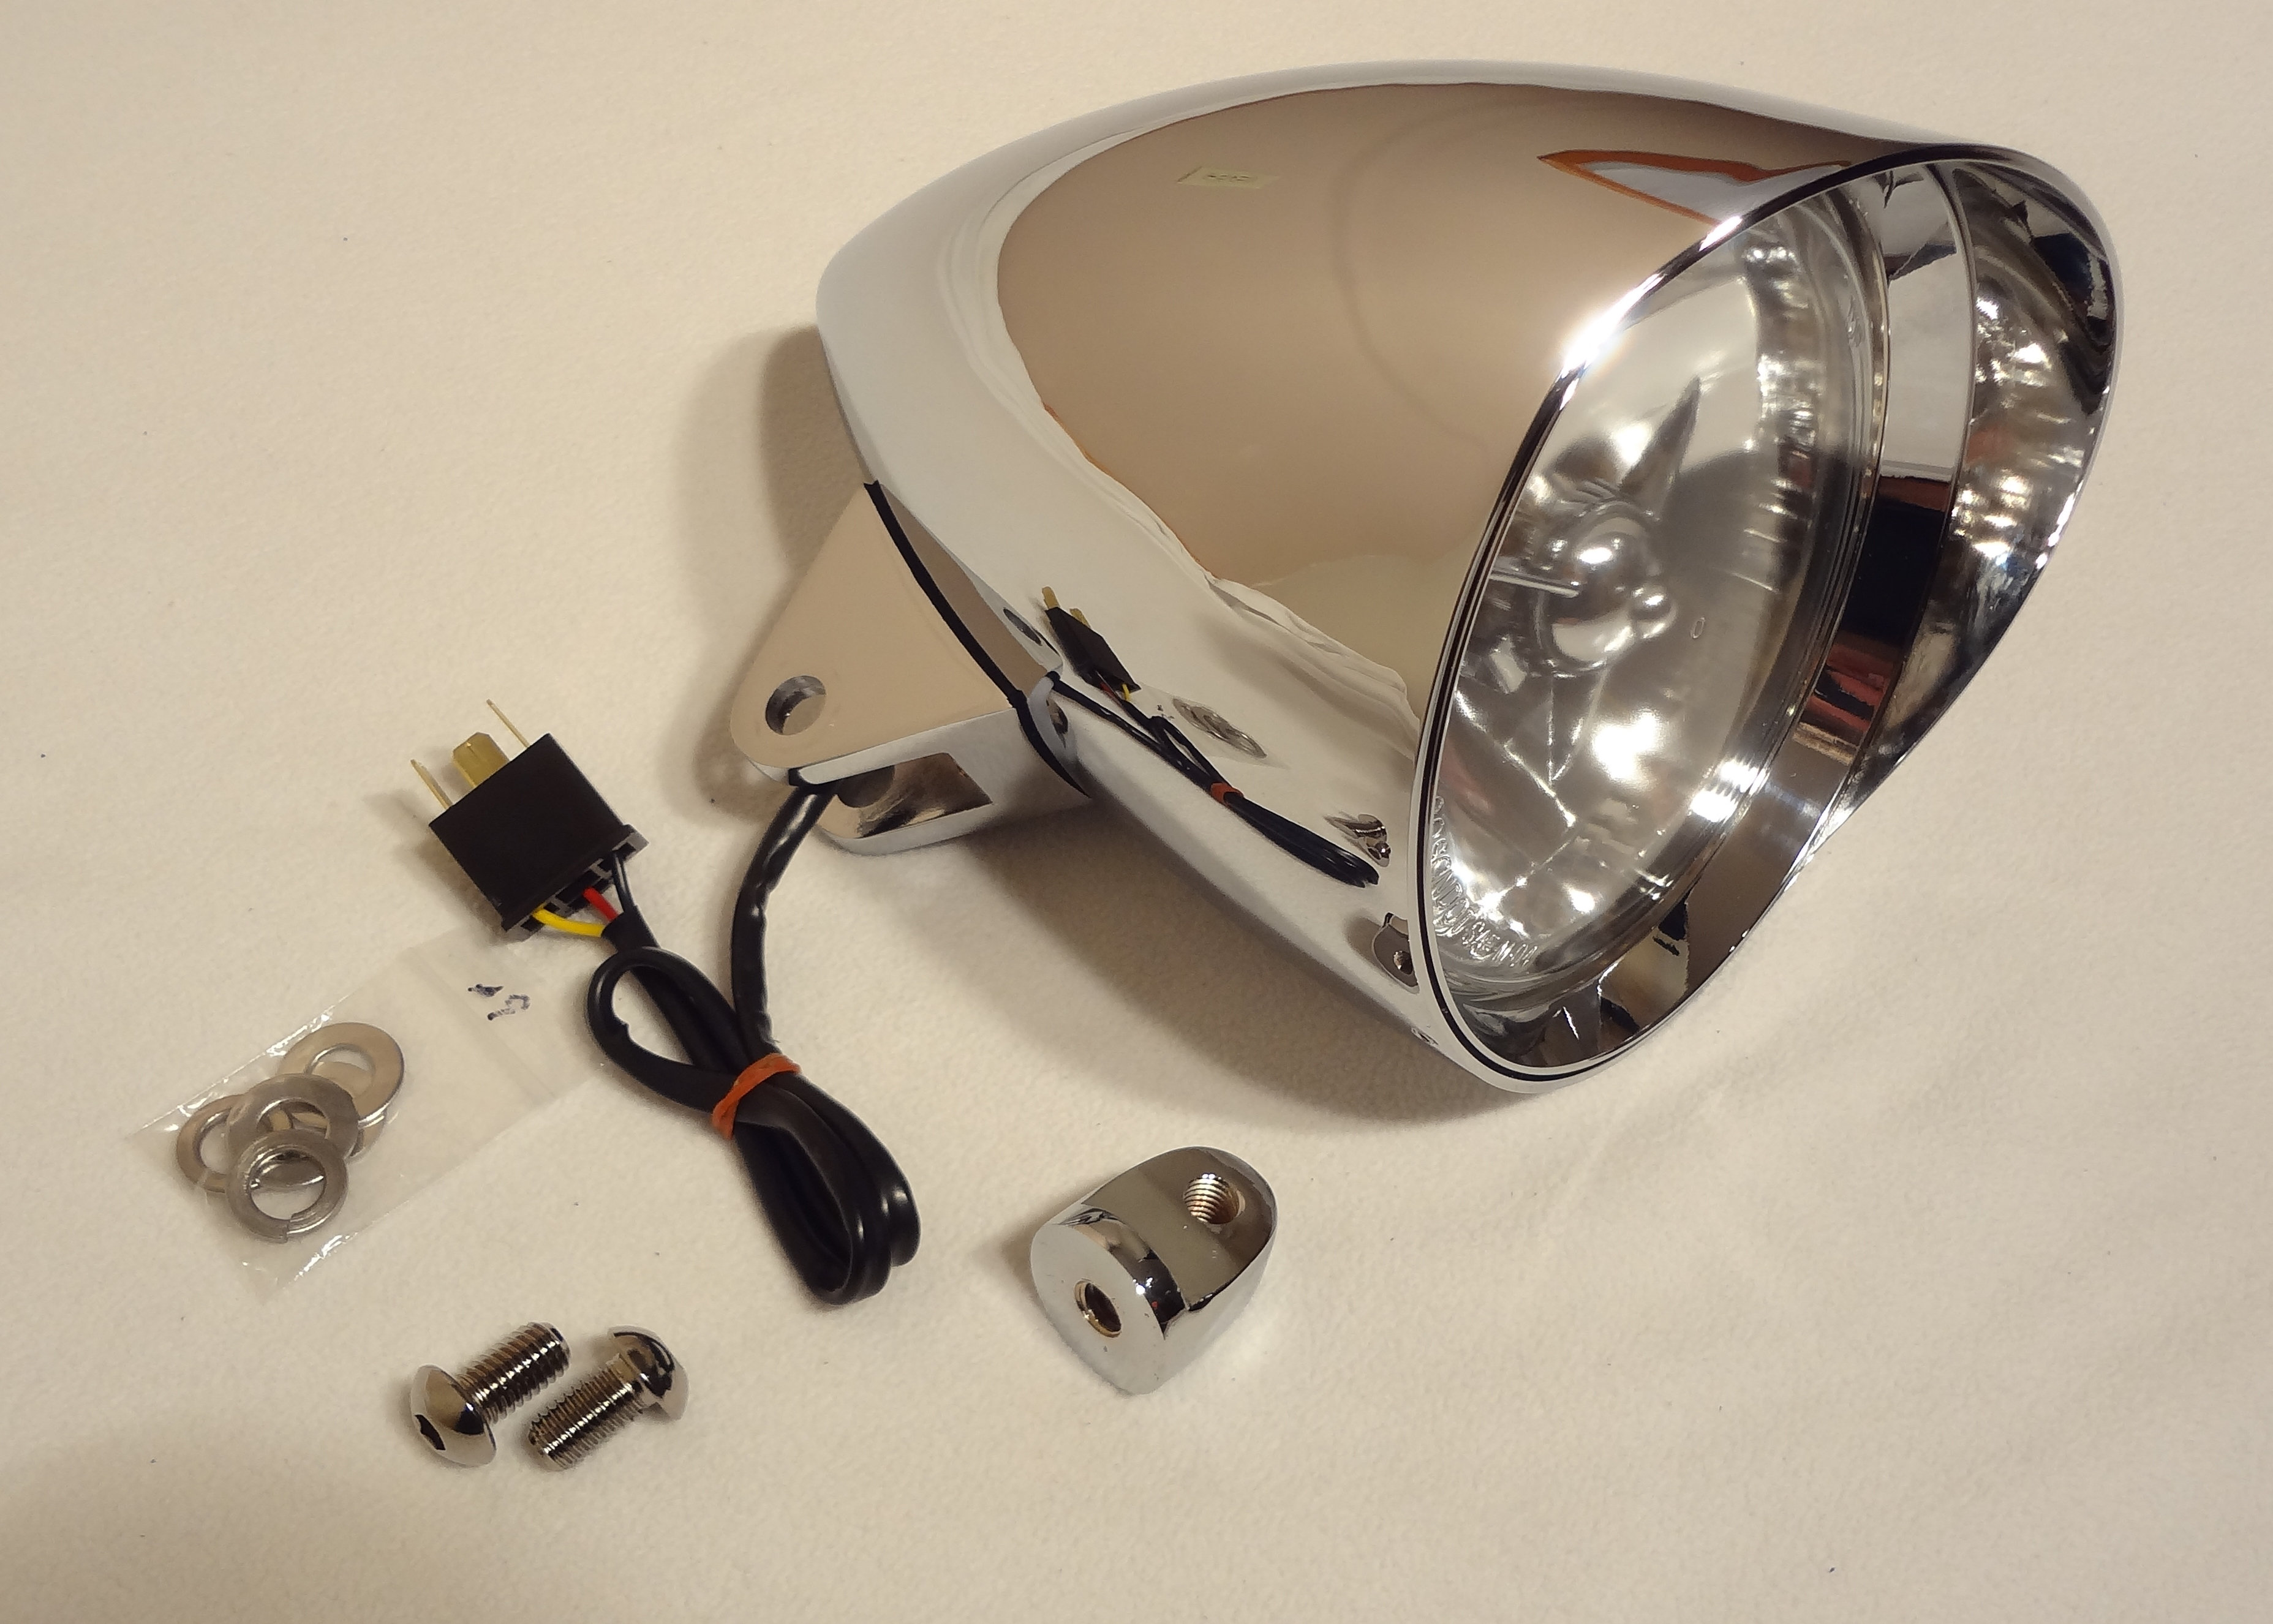 cobra ii headlight with 3-wire system and factory honda plug  allows you to  plug directly into the factory honda wiring harness without splicing